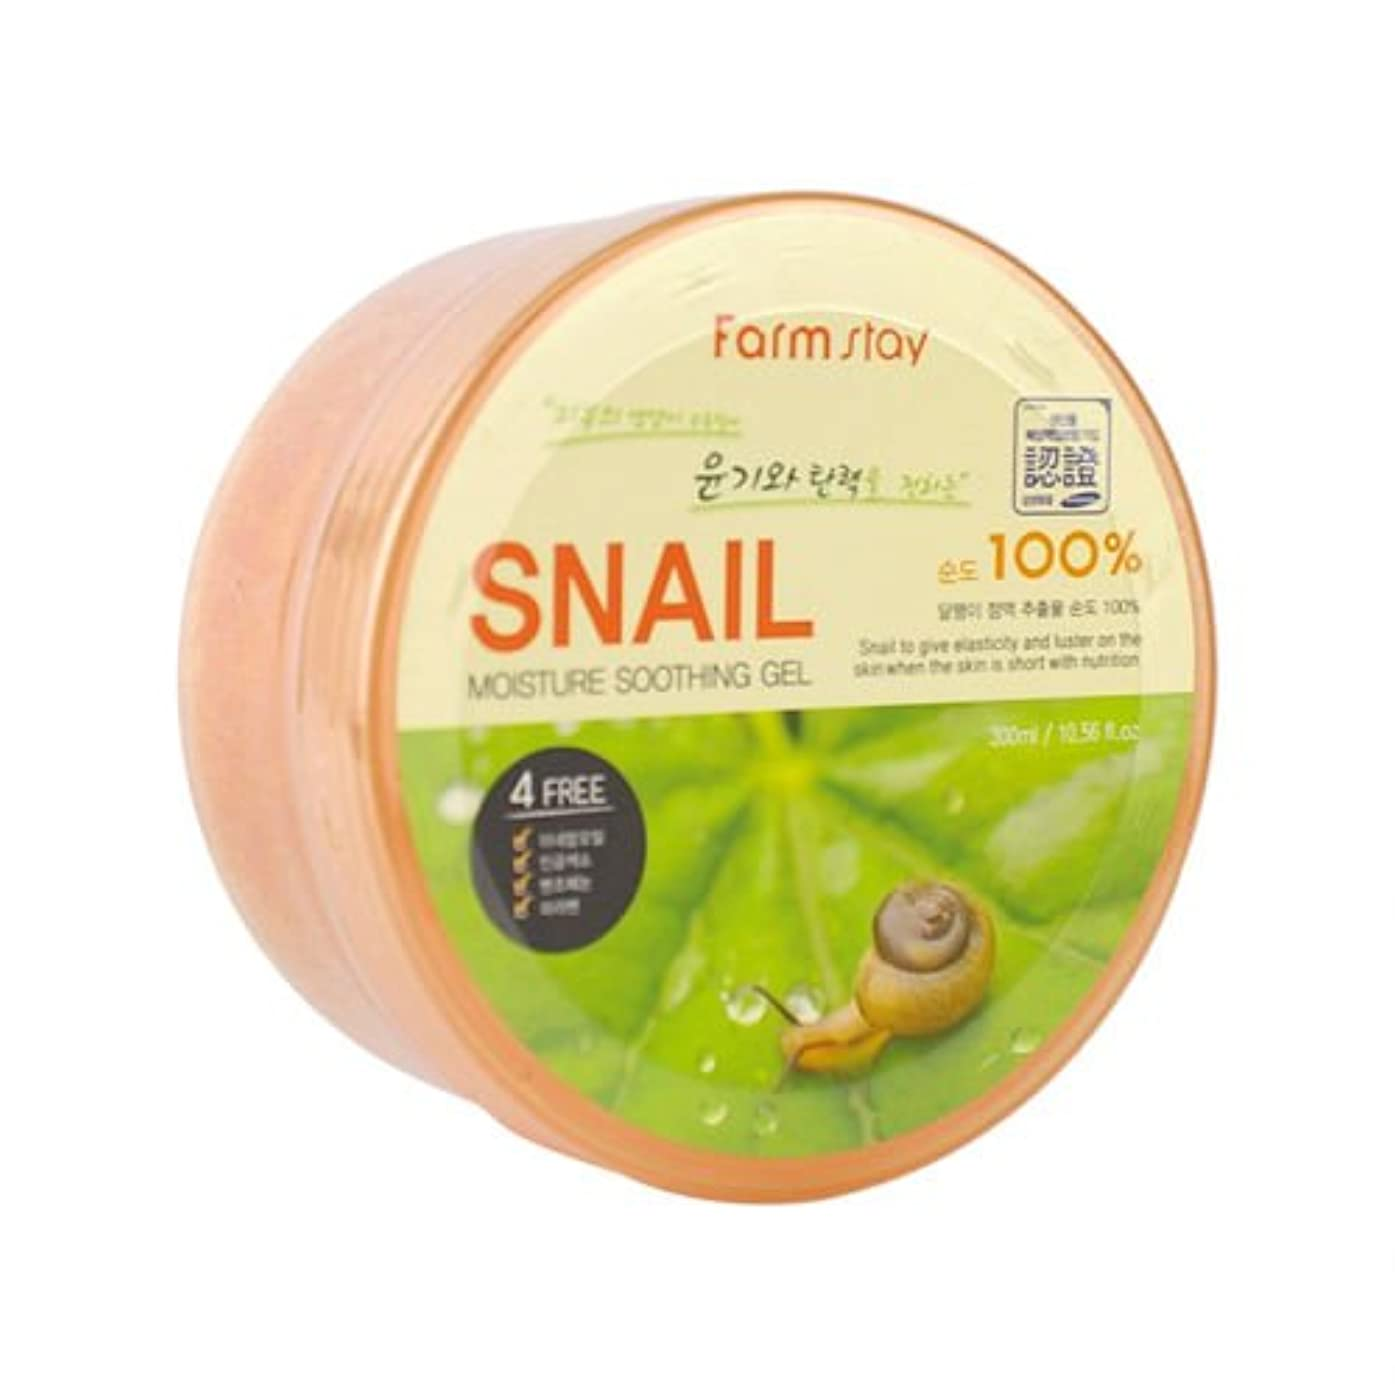 Farm Stay Snail Moisture Soothing Gel 300ml /Snail extract 100%/Skin Glowing & Elasticity Up [並行輸入品]